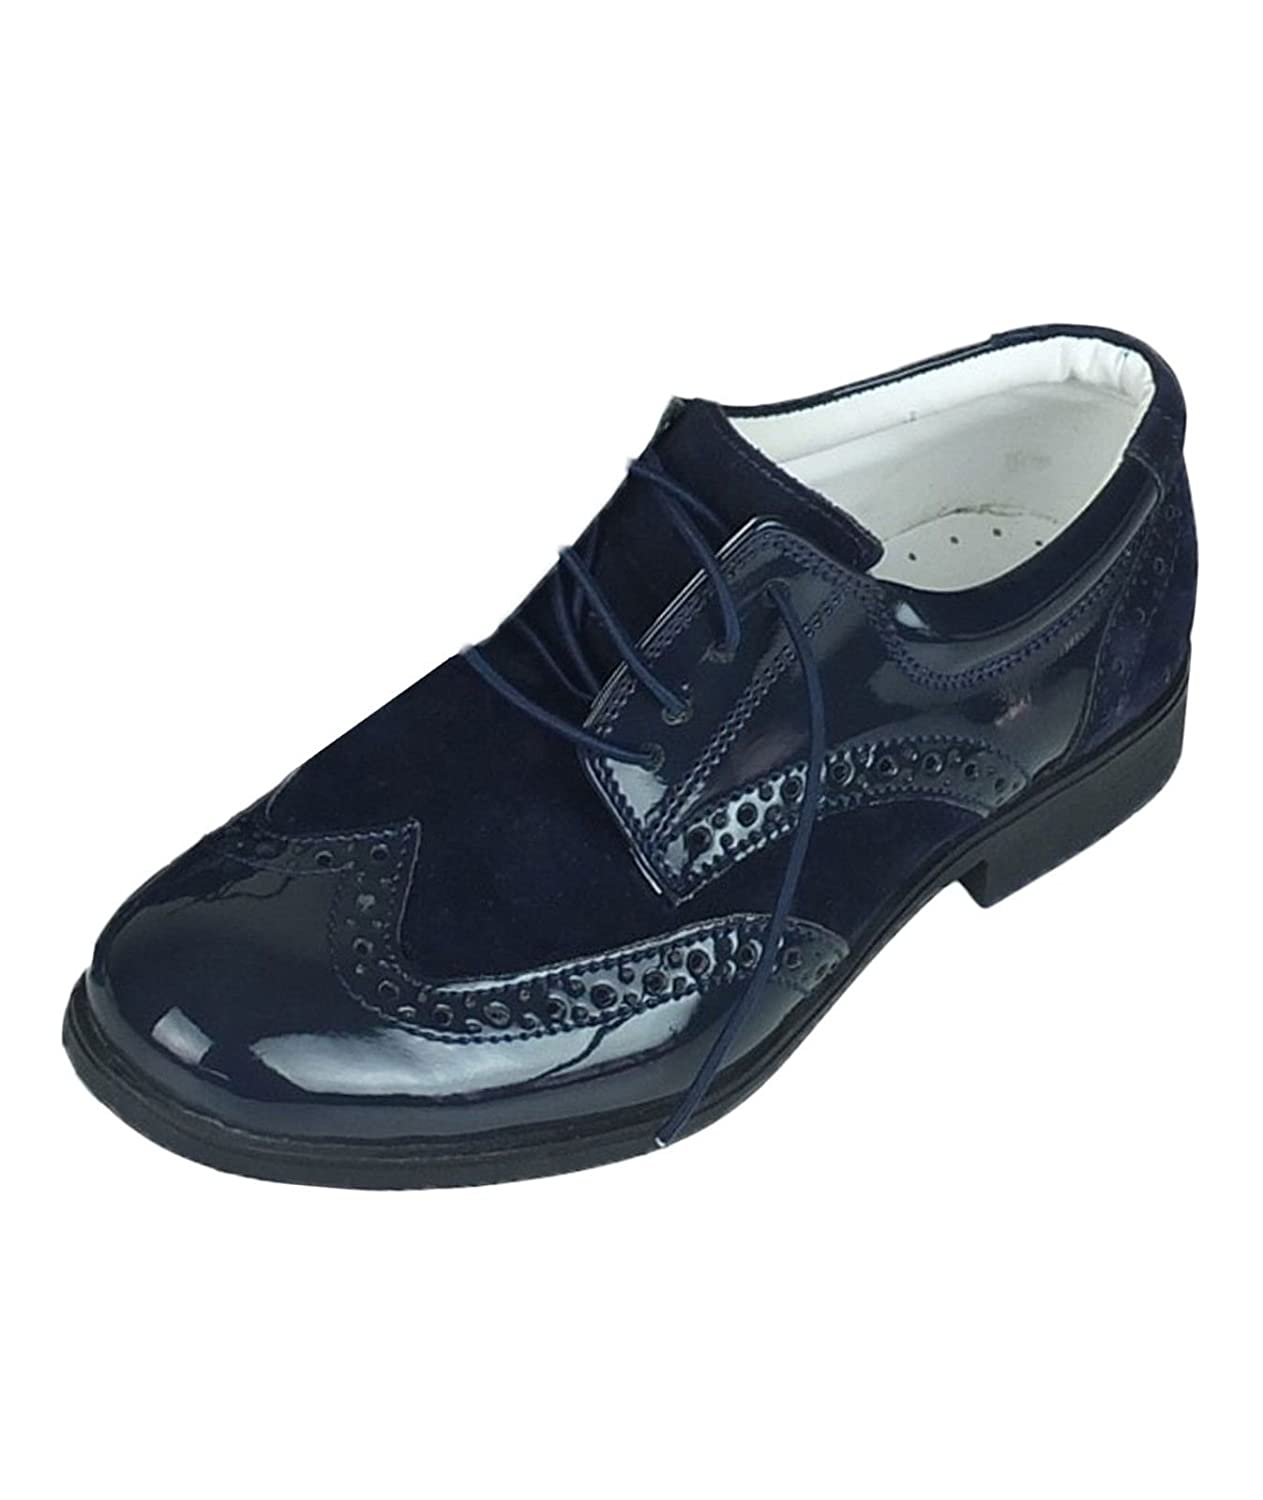 Boys Wedding Navy Suede and Patent Formal Brogue Shoes